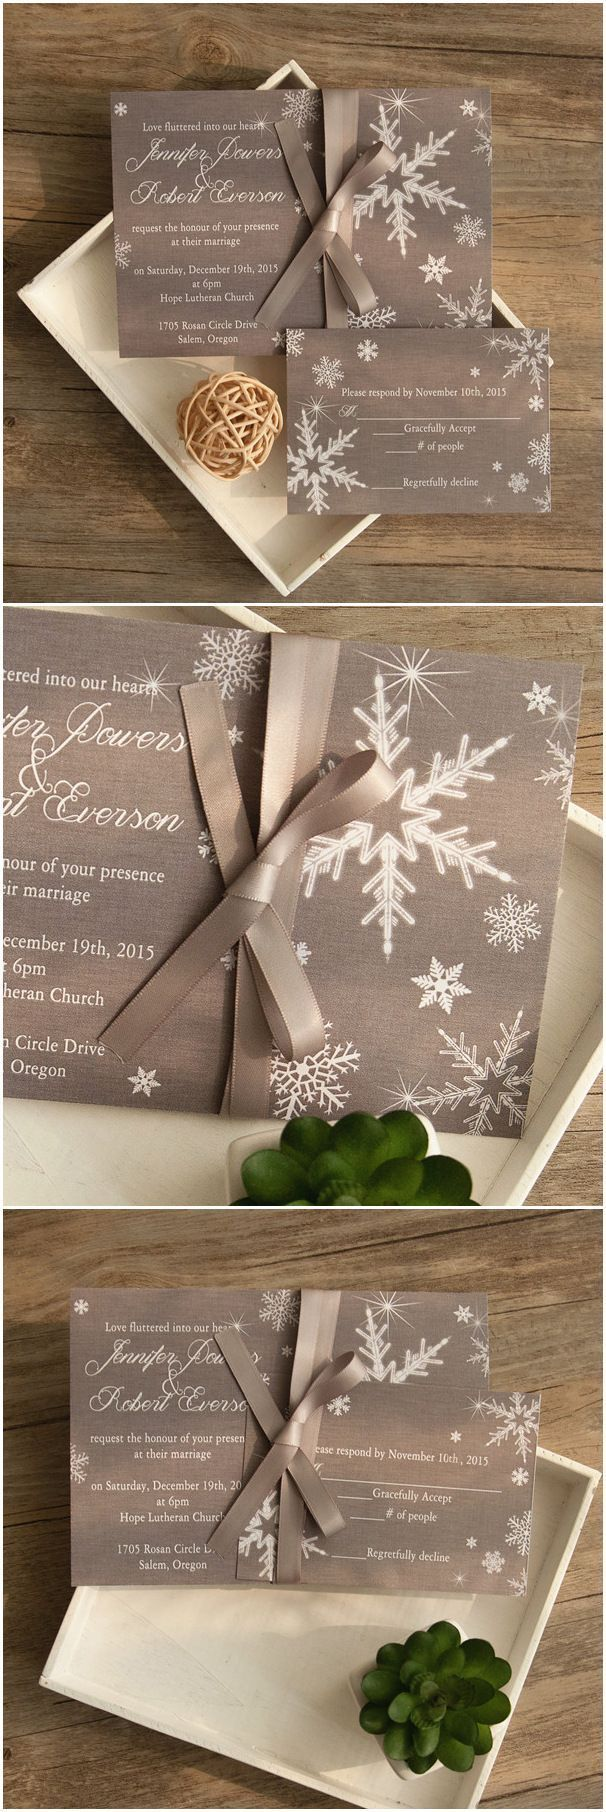 Winter wonderland snowflake invitations                                                                                                                                                                                 More